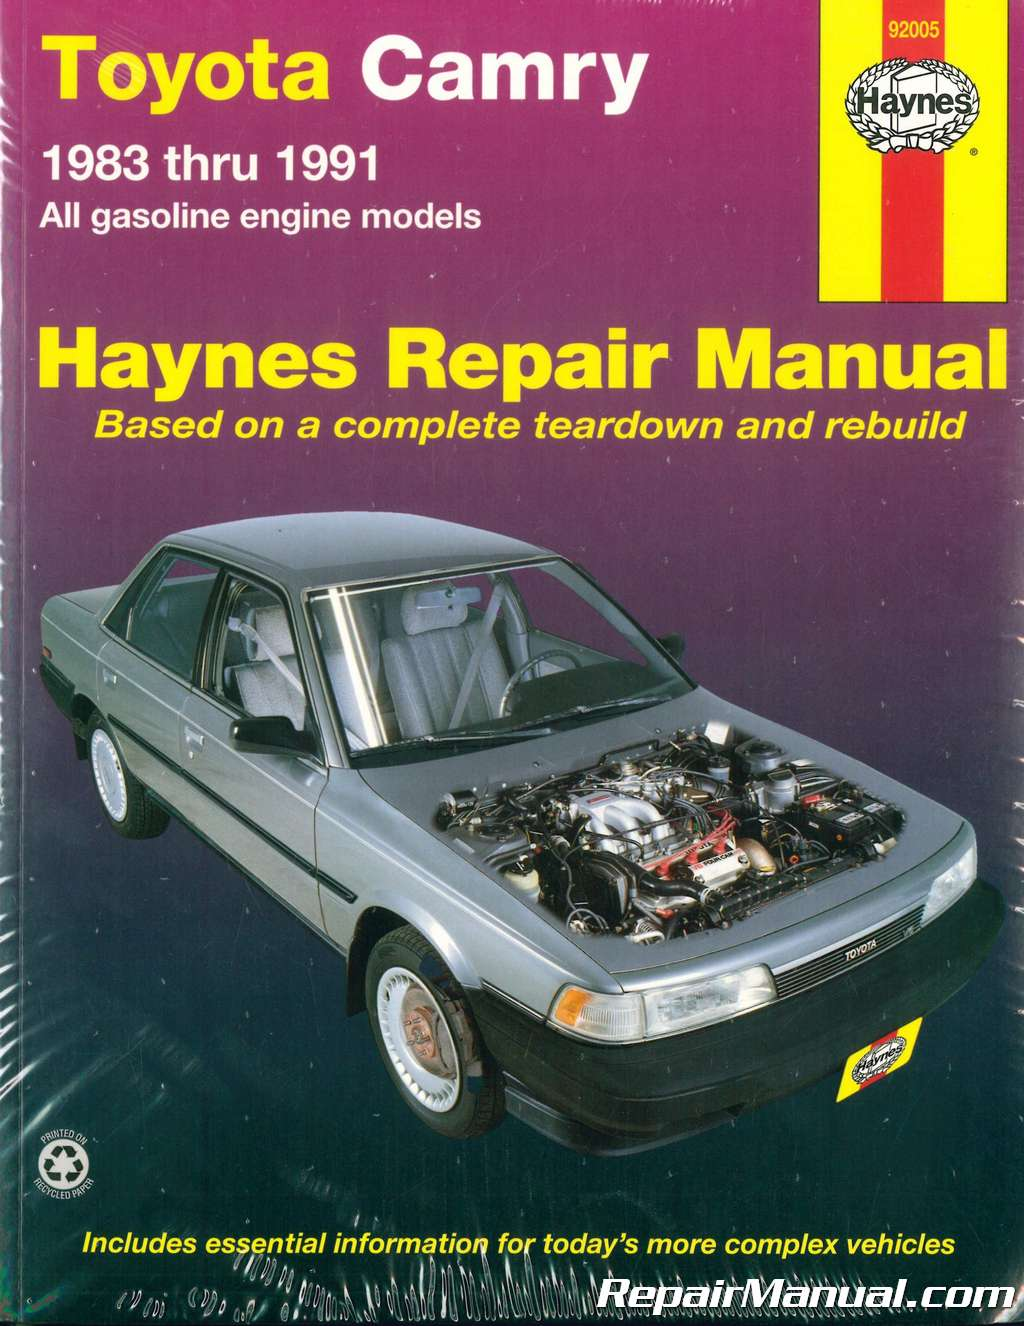 toyota solara owners manual 1999 pdf car owners manuals. Black Bedroom Furniture Sets. Home Design Ideas